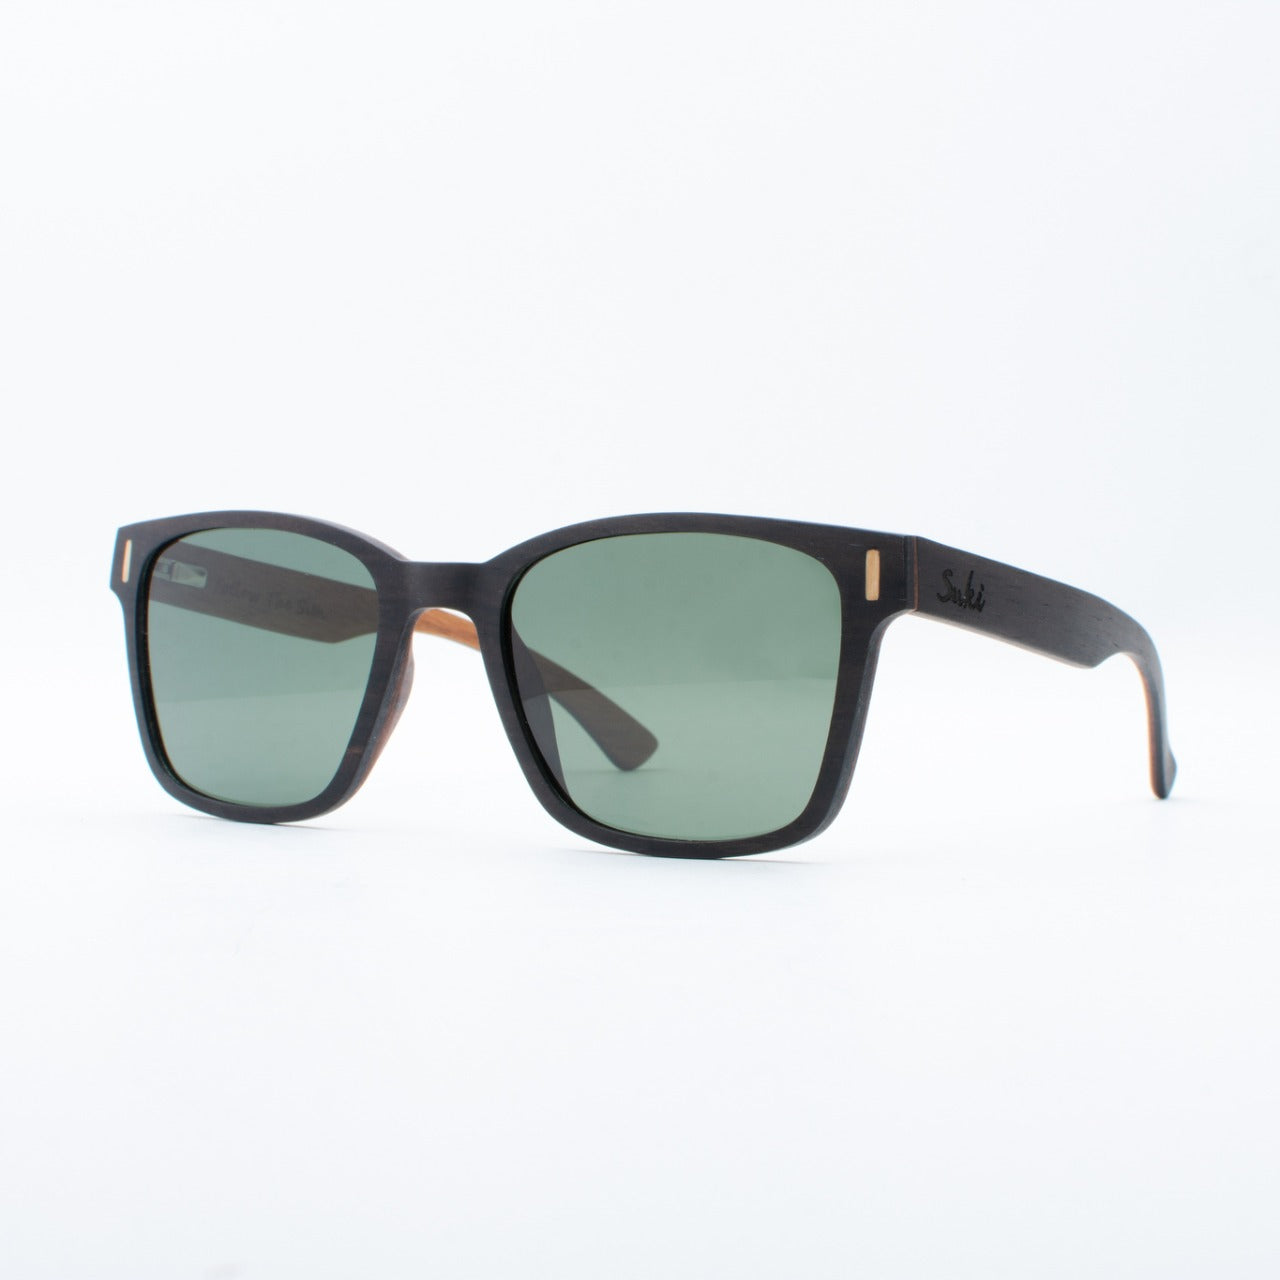 WOODEN SUNGLASSES KINTAMANI EBONY SUKI